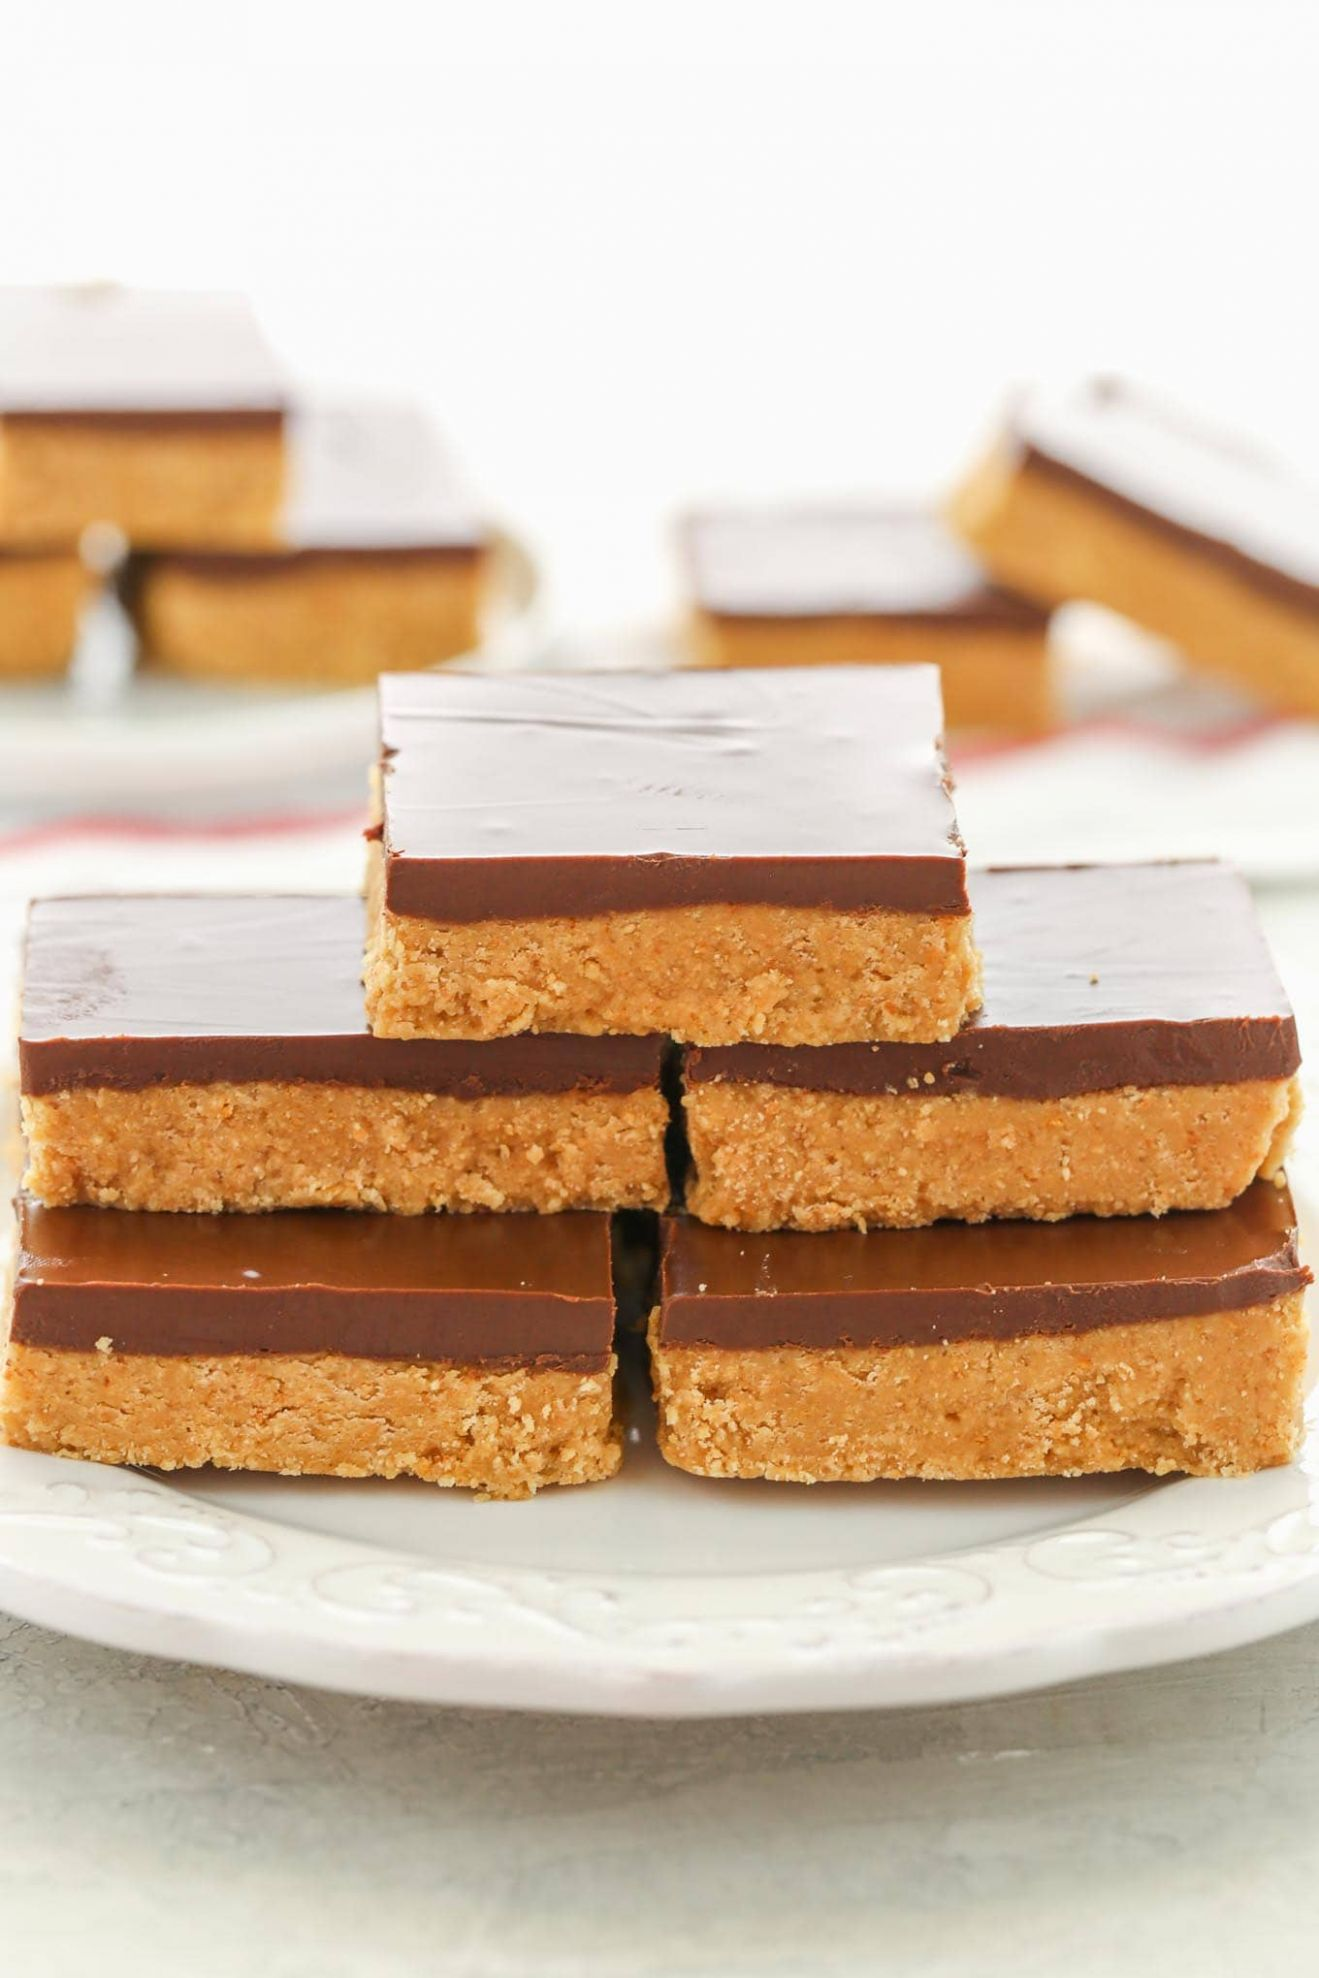 No-Bake Chocolate Peanut Butter Bars - Live Well Bake Often - Dessert Recipes Peanut Butter